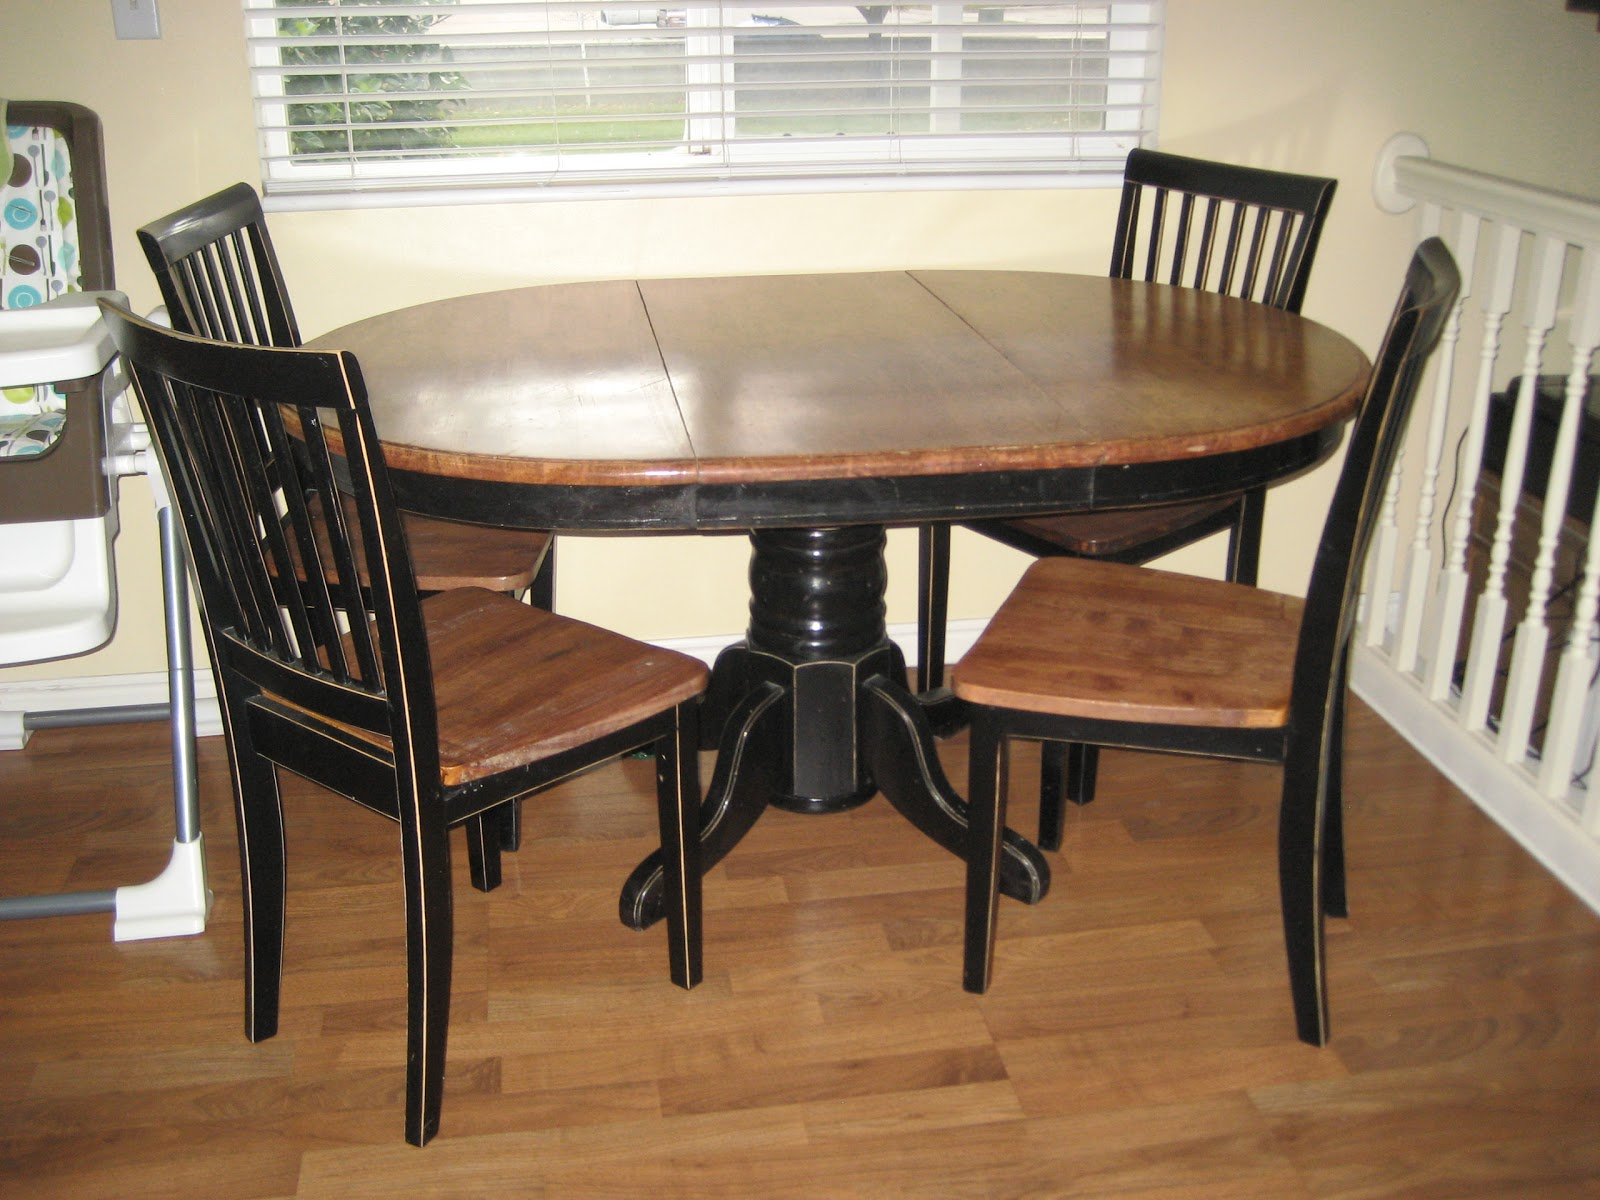 Paint Me Shabby: A New Dining Table